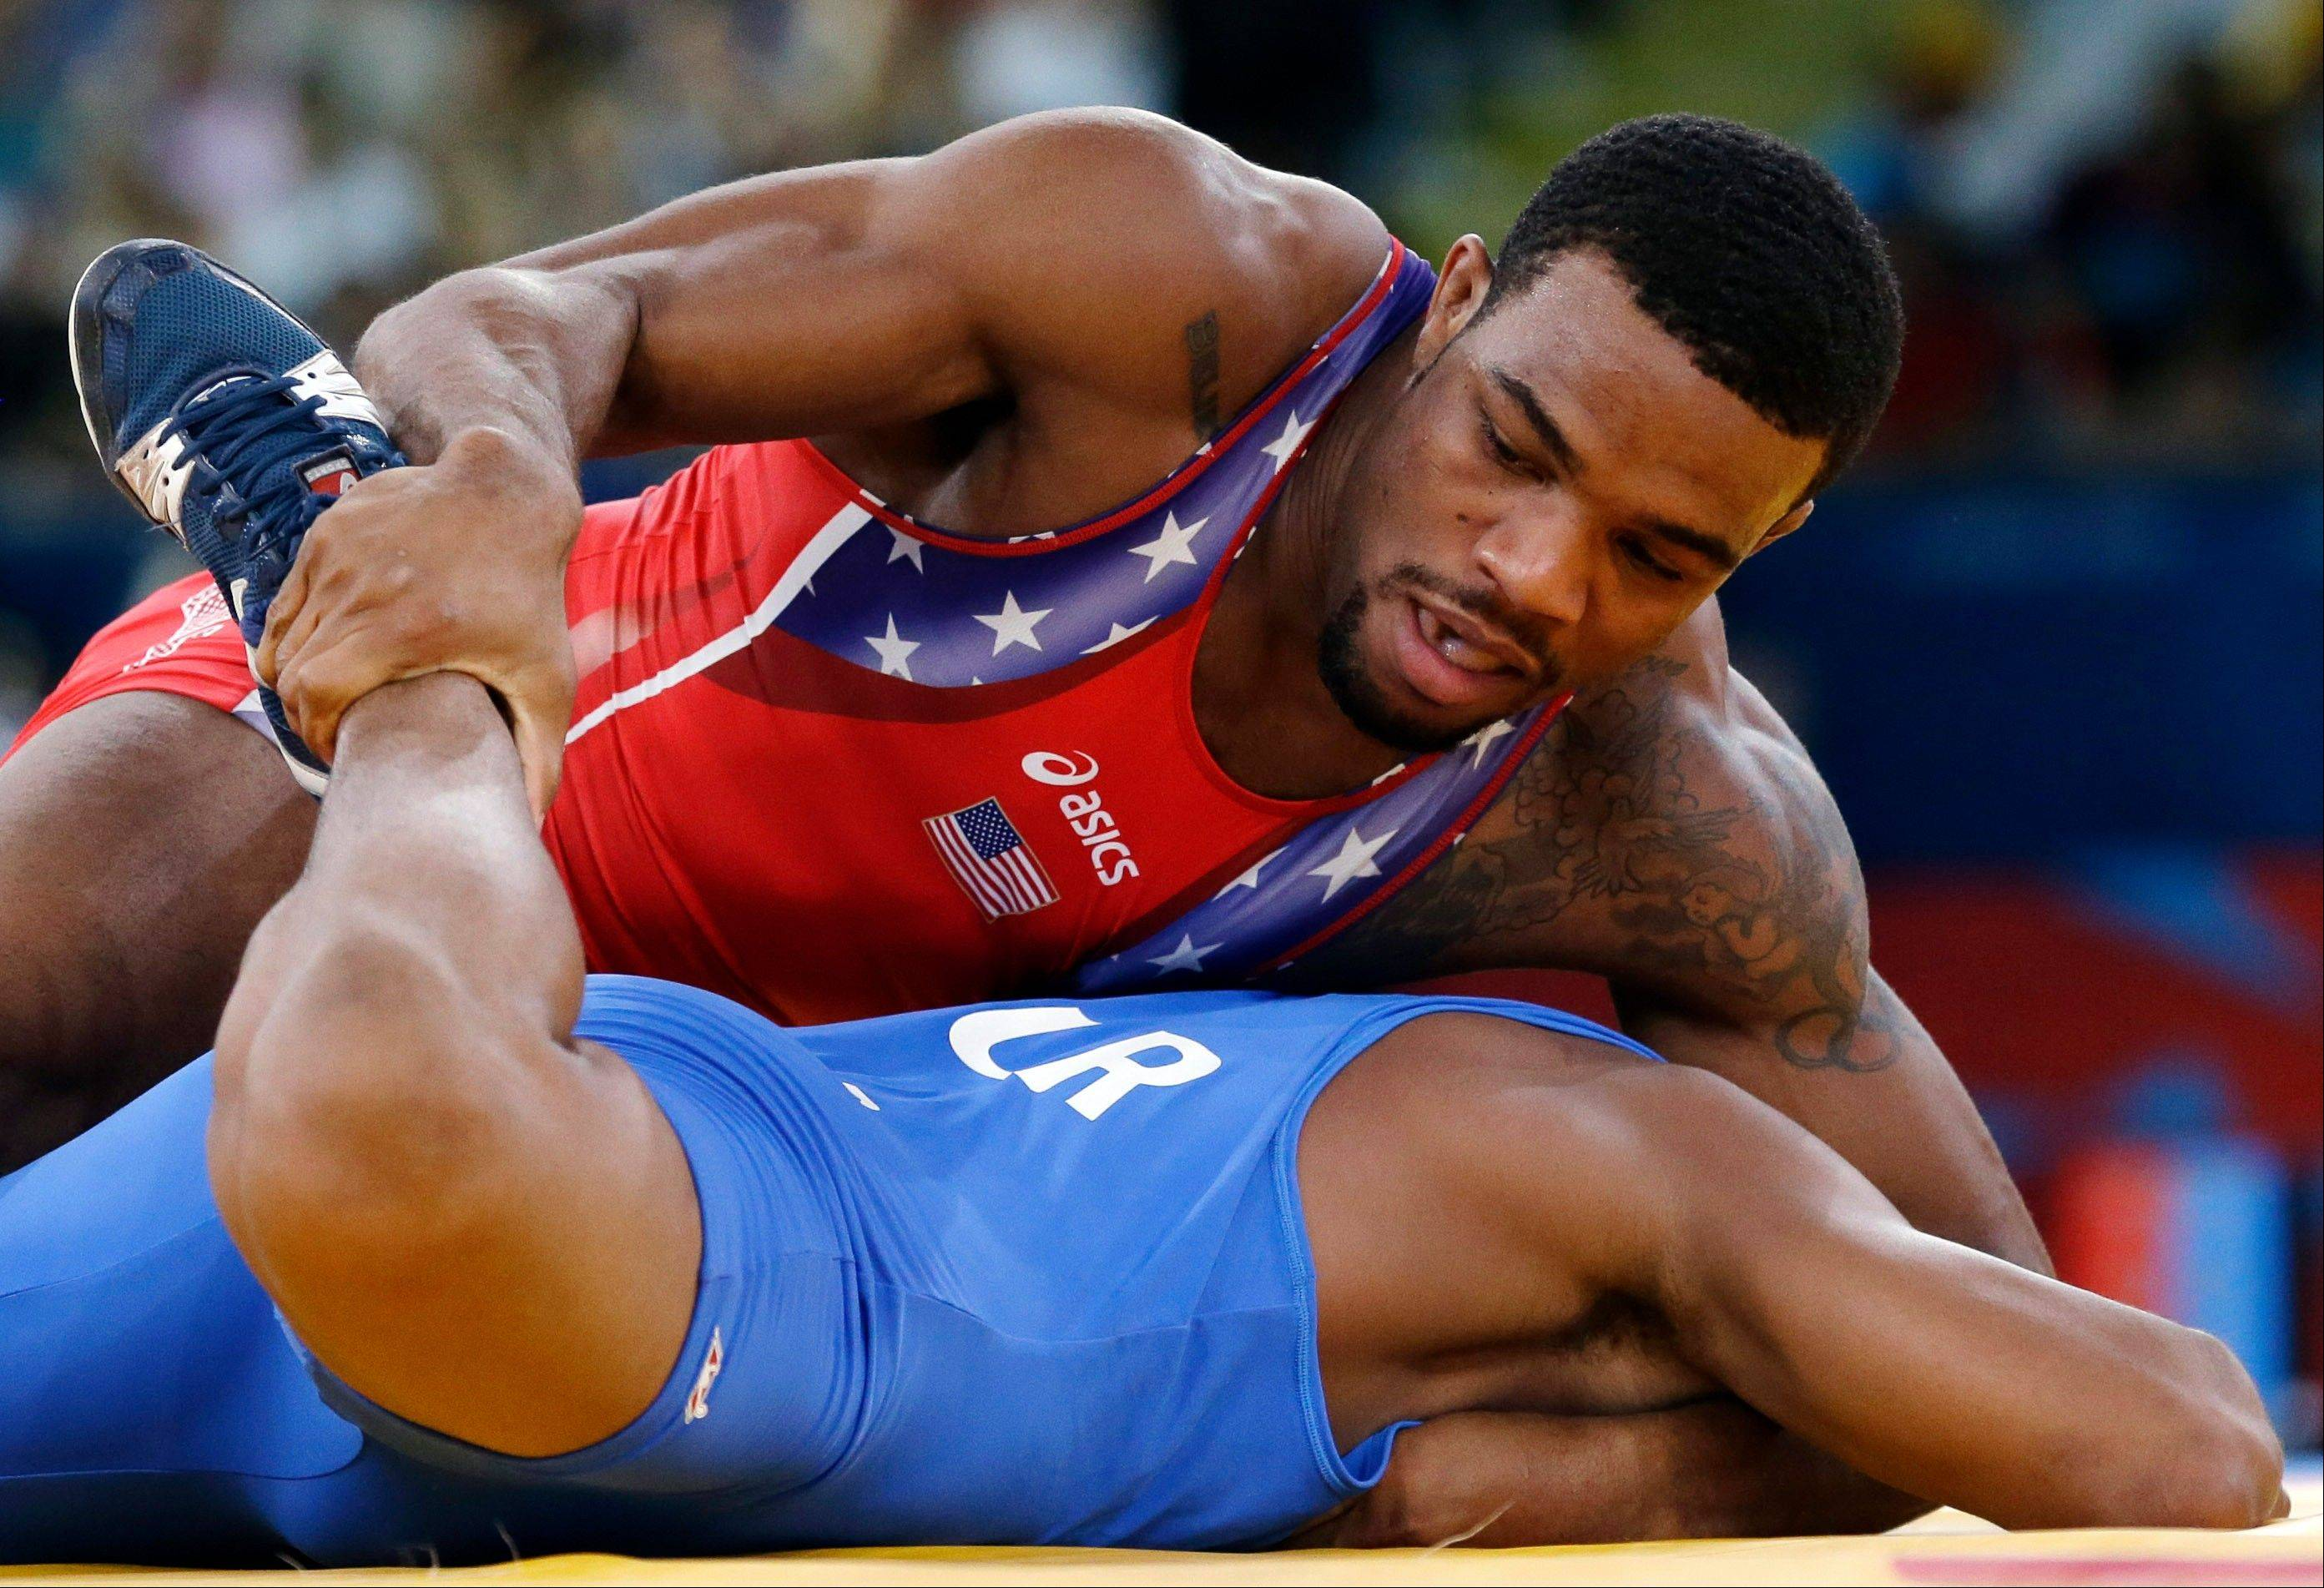 The United States' Jordan Ernest Burroughs, in red, and Puerto Rico's Francisco Daniel Soler Tanco compete in a 74-kg men's freestyle match at the 2012 Summer Olympics in London. Wrestling is hoping to be included into the 2020 Olympic Games.